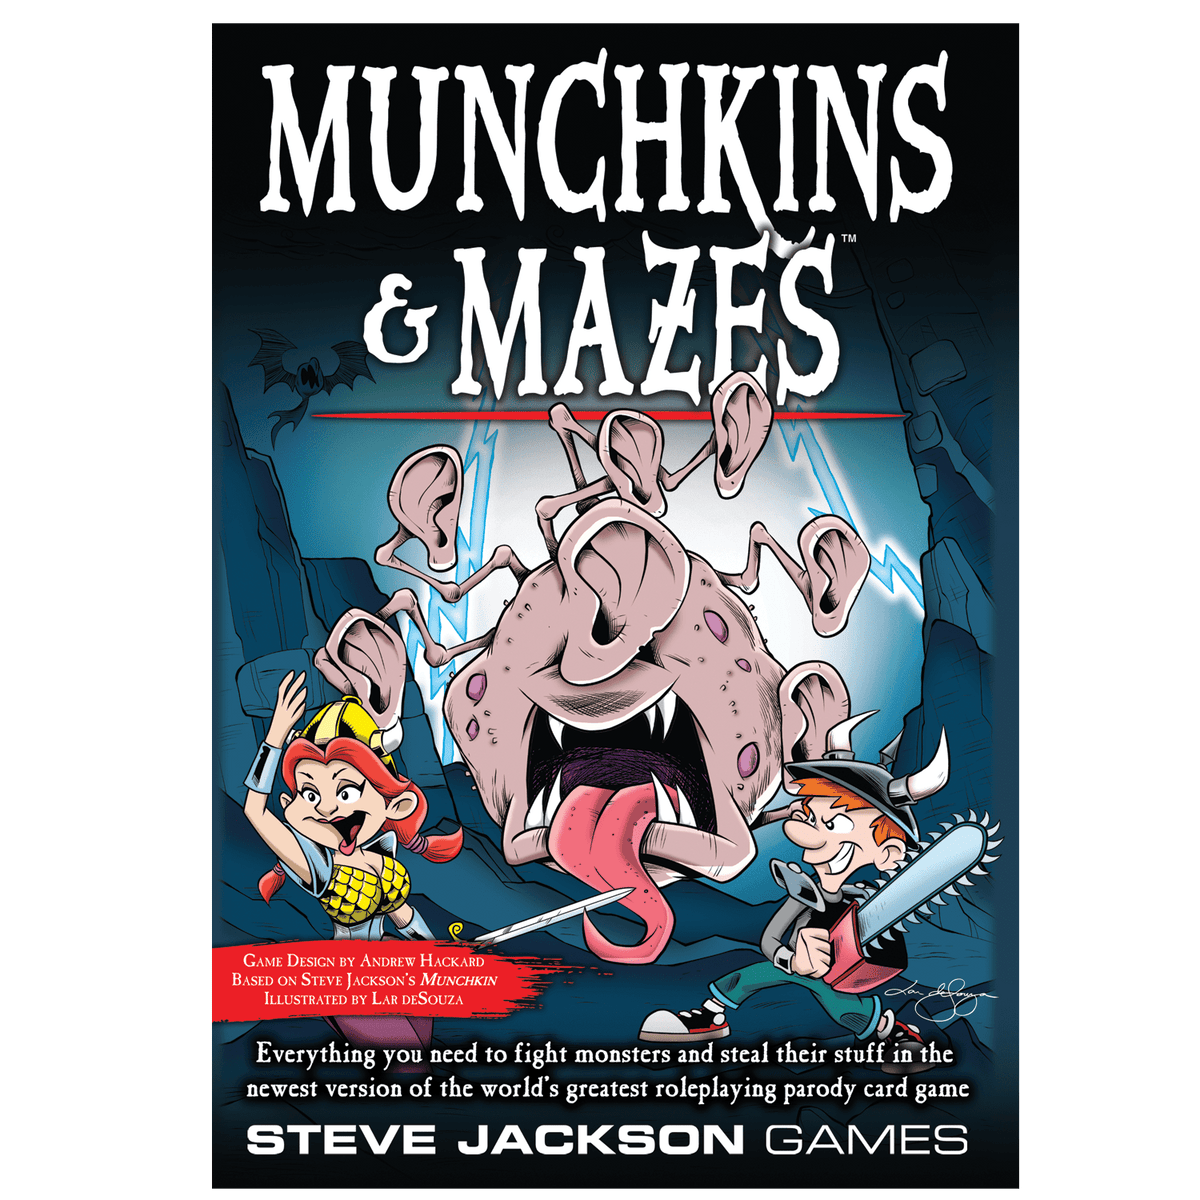 Munchkins & Mazes Alliance Games Board Games